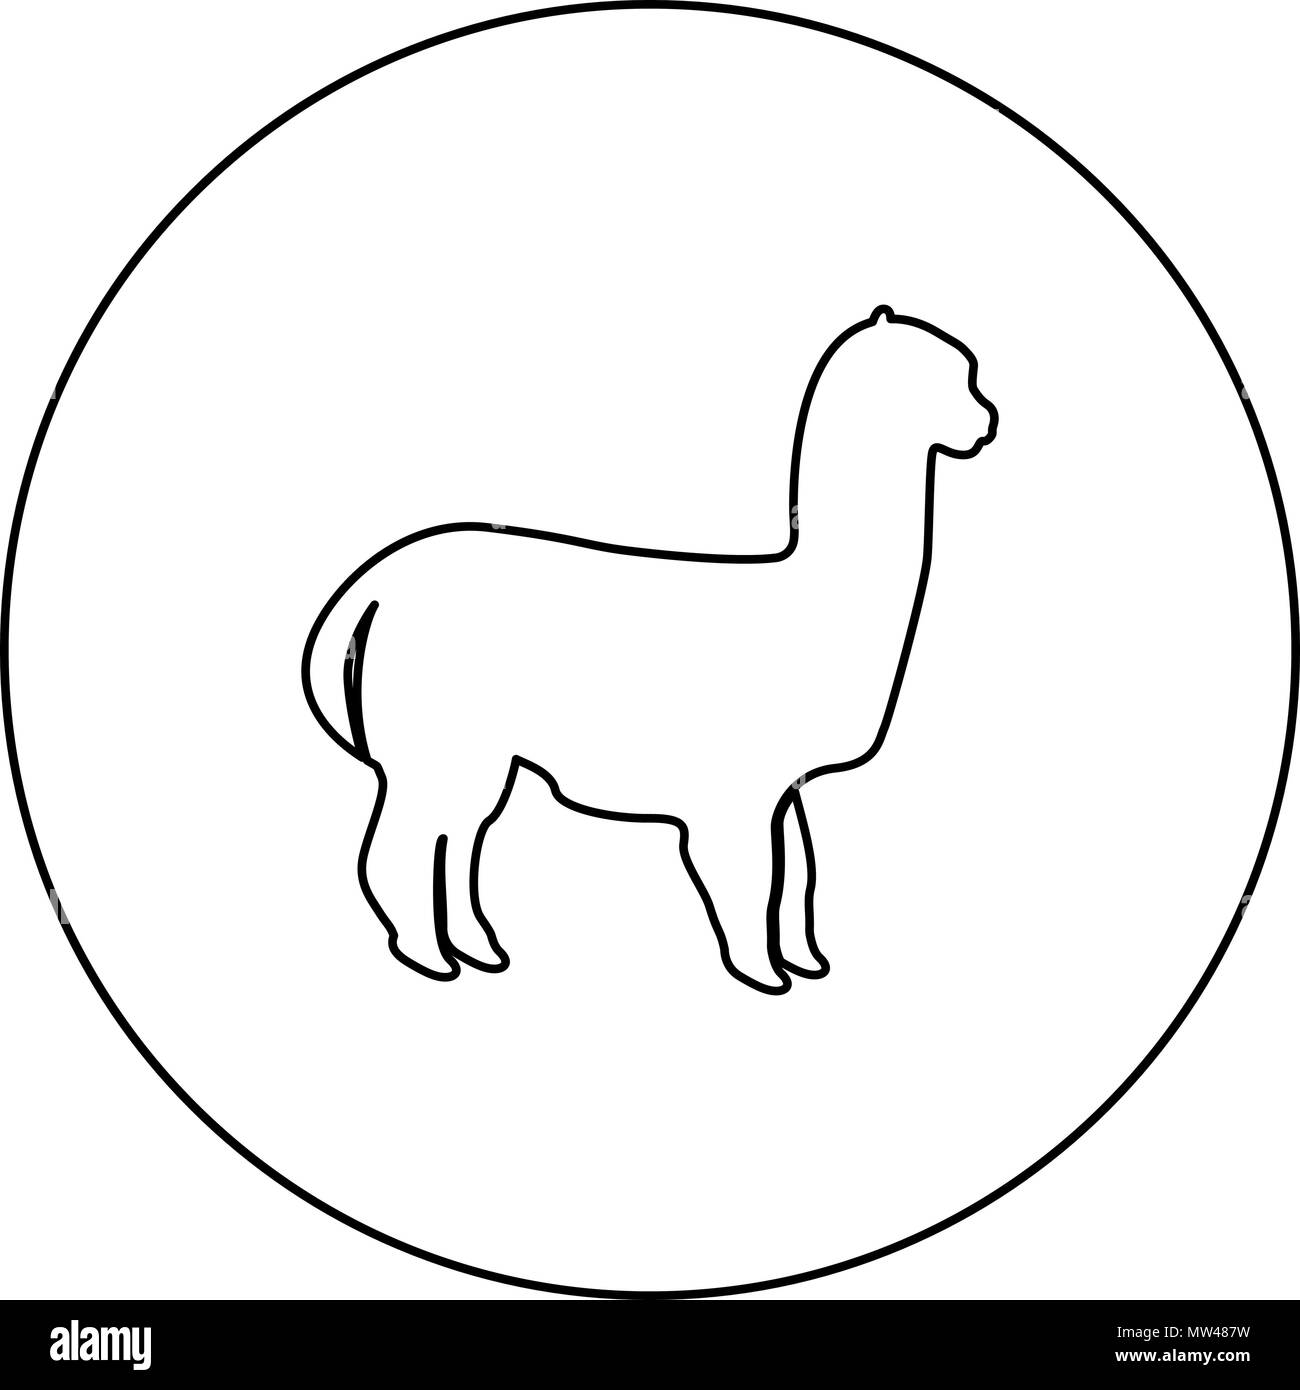 Alpaca black icon in circle outline vector I isolated Stock Vector